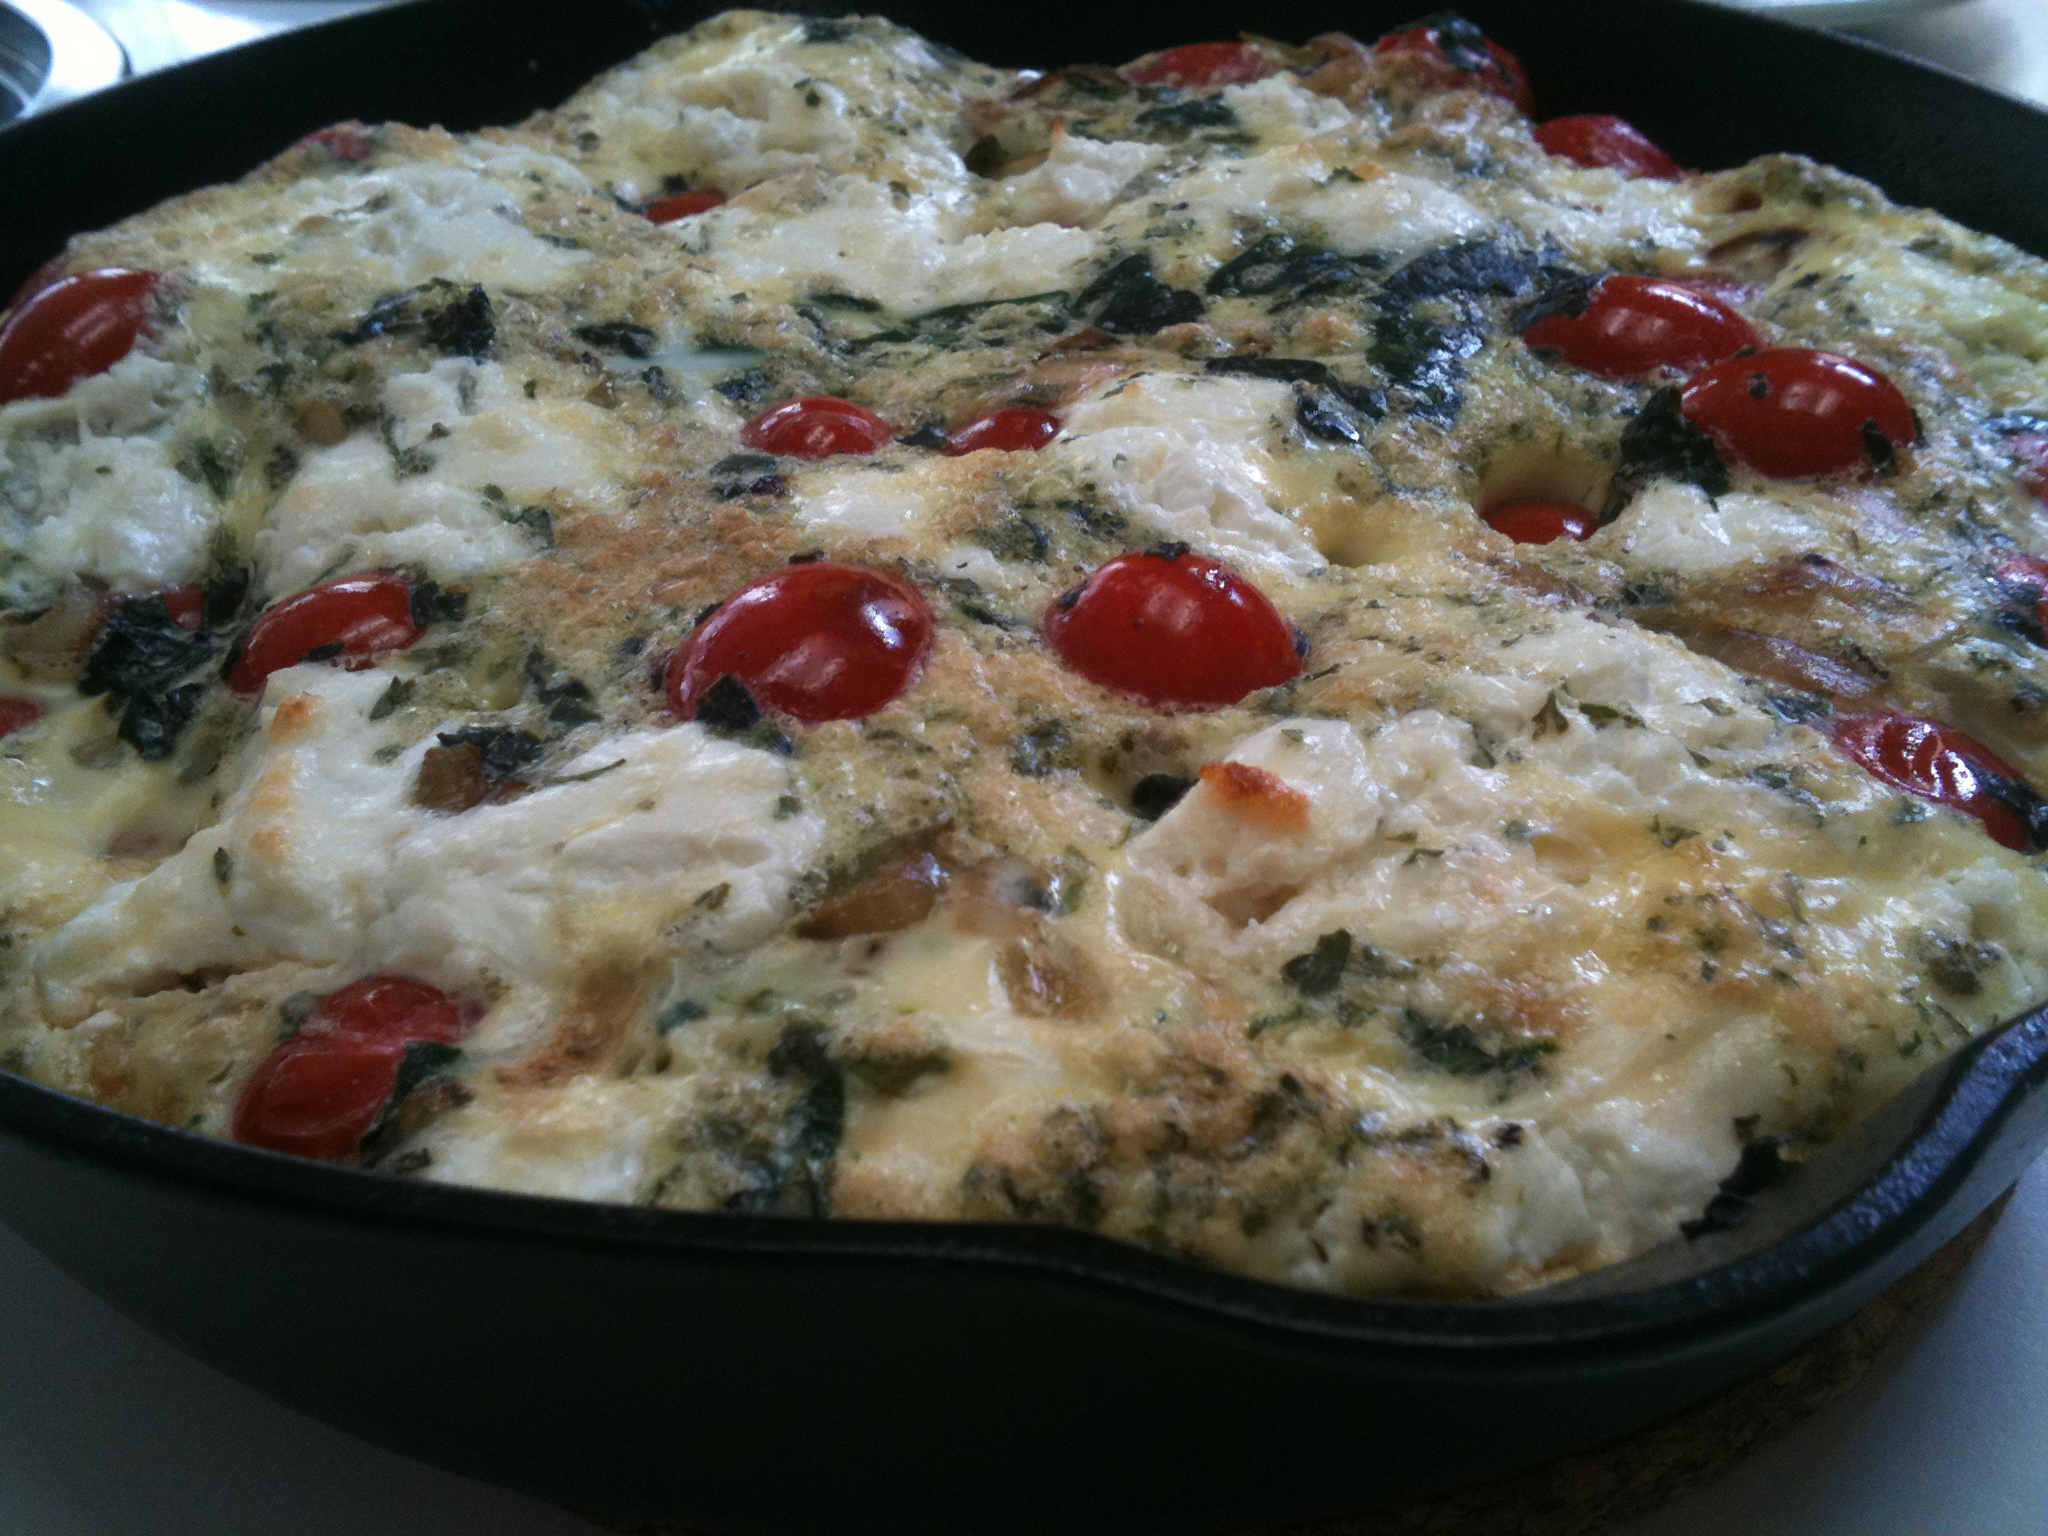 Iron Skillet Frittata w/ Caramelized Shallots, Spinach, Grape Tomatoes, &amp; Goat Cheese